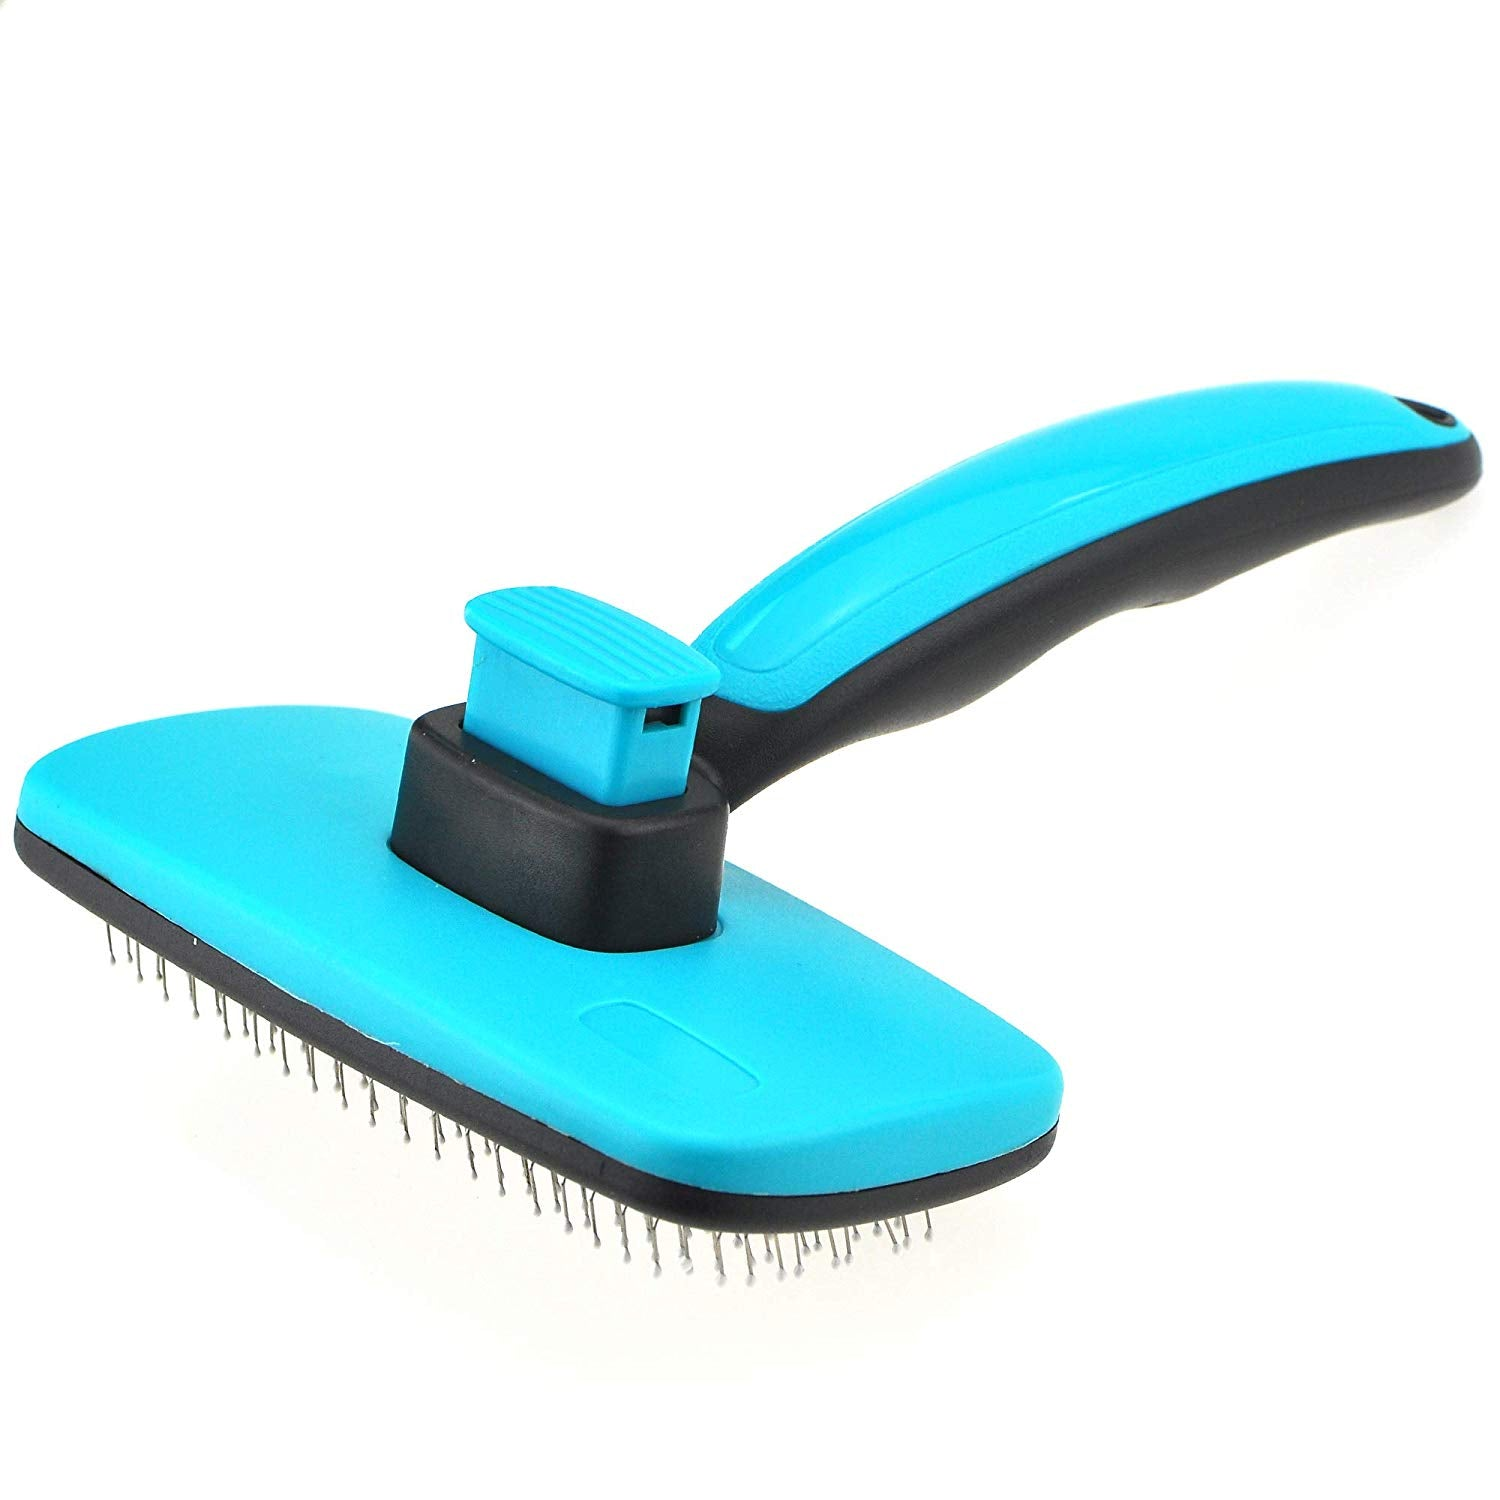 Slicker Grooming Brush